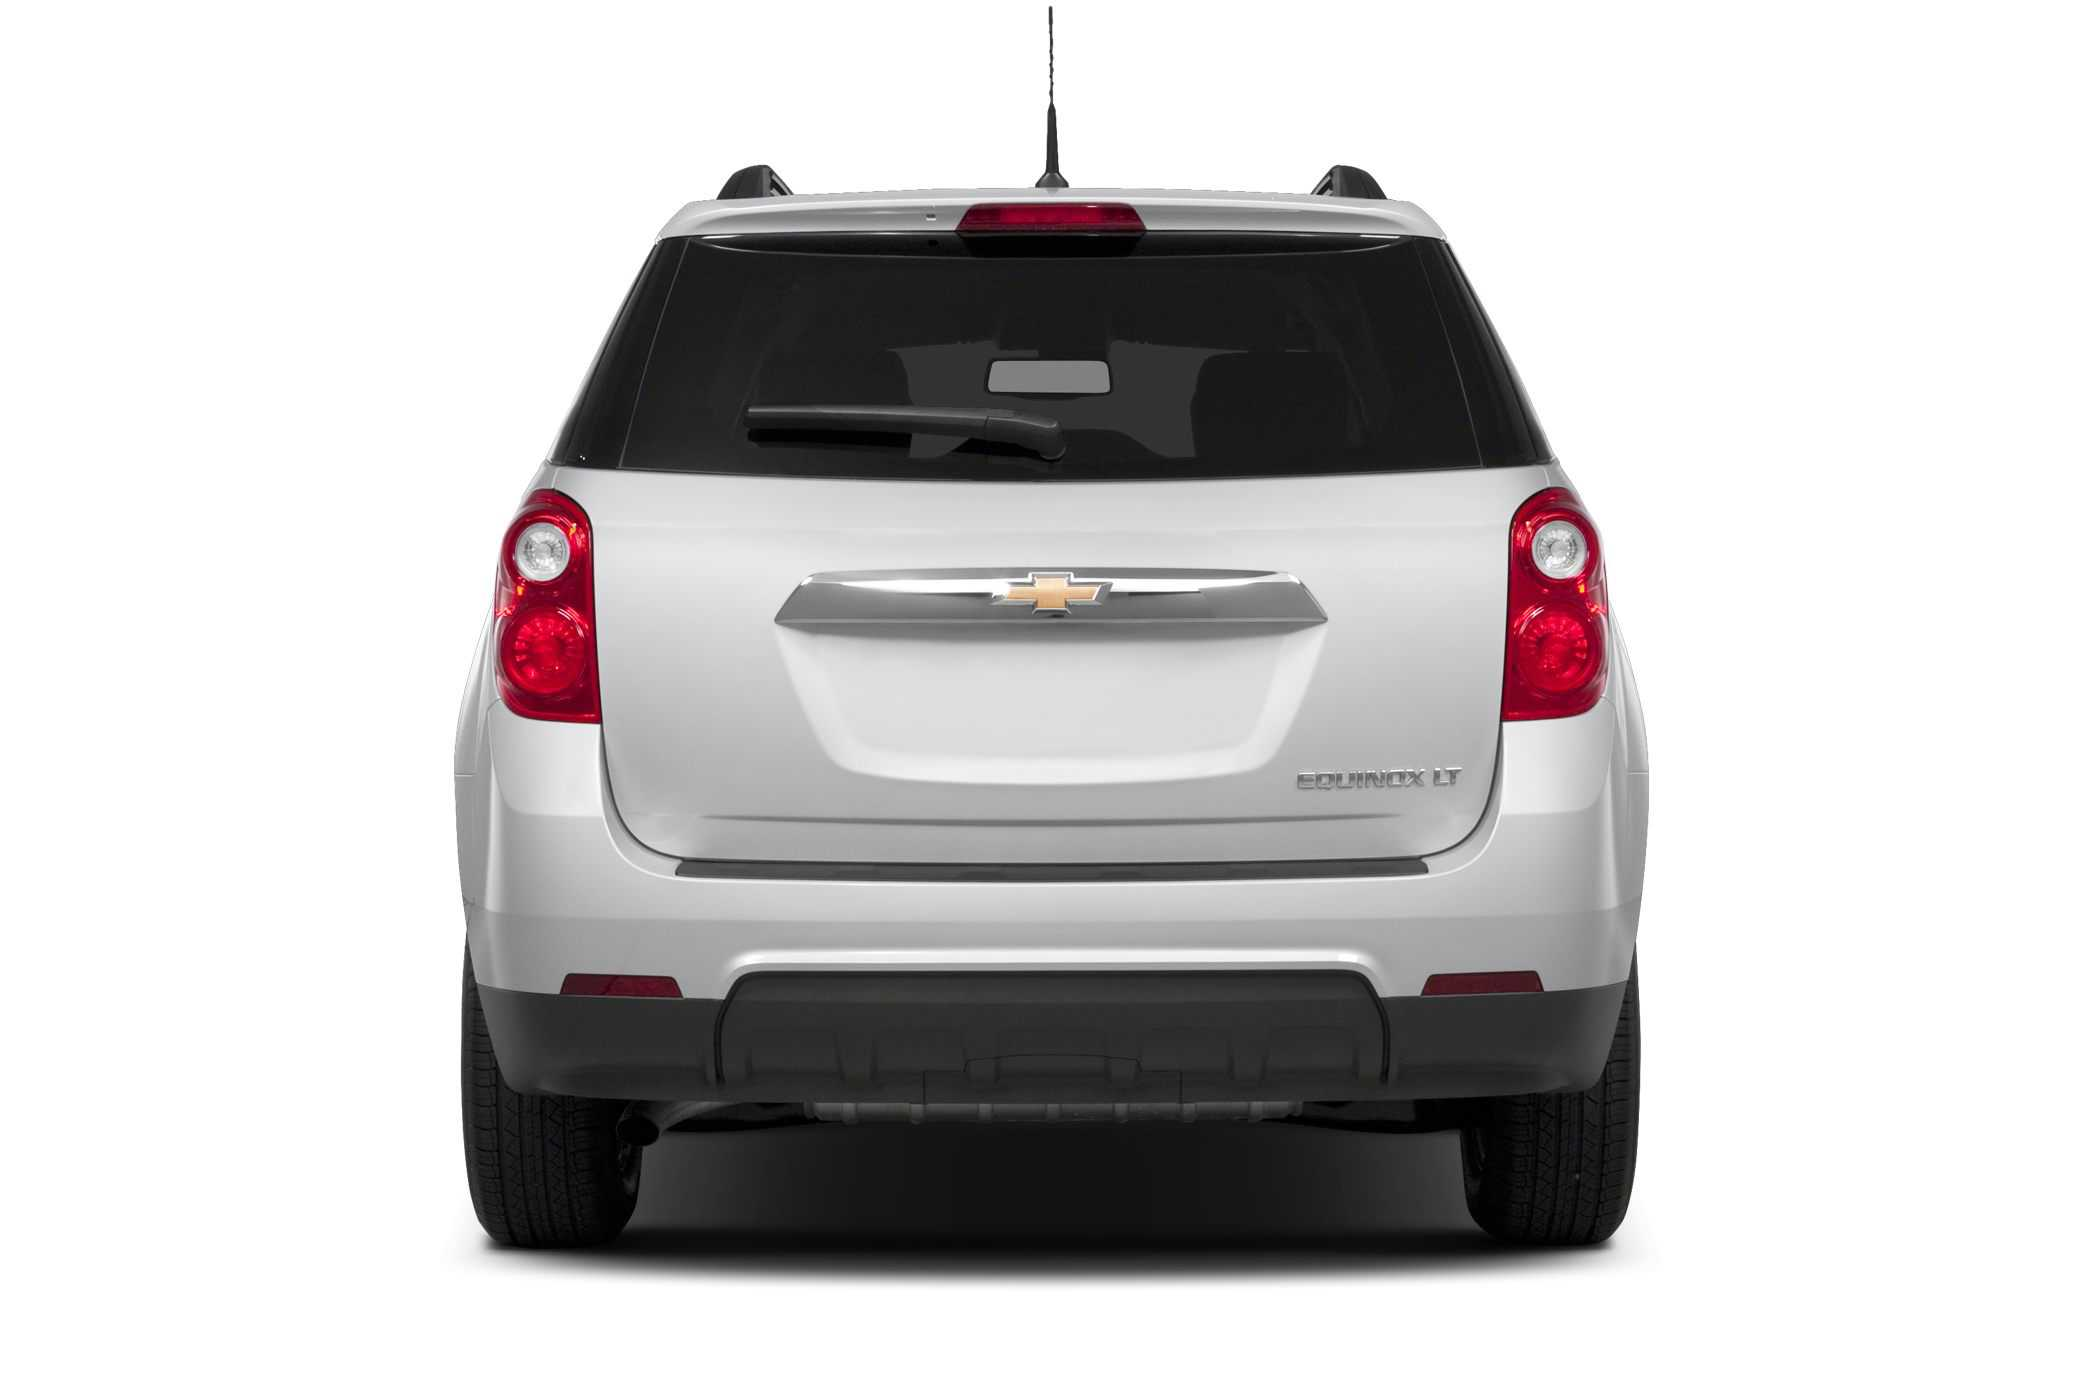 2013 chevrolet equinox for sale in auburn ma. Black Bedroom Furniture Sets. Home Design Ideas